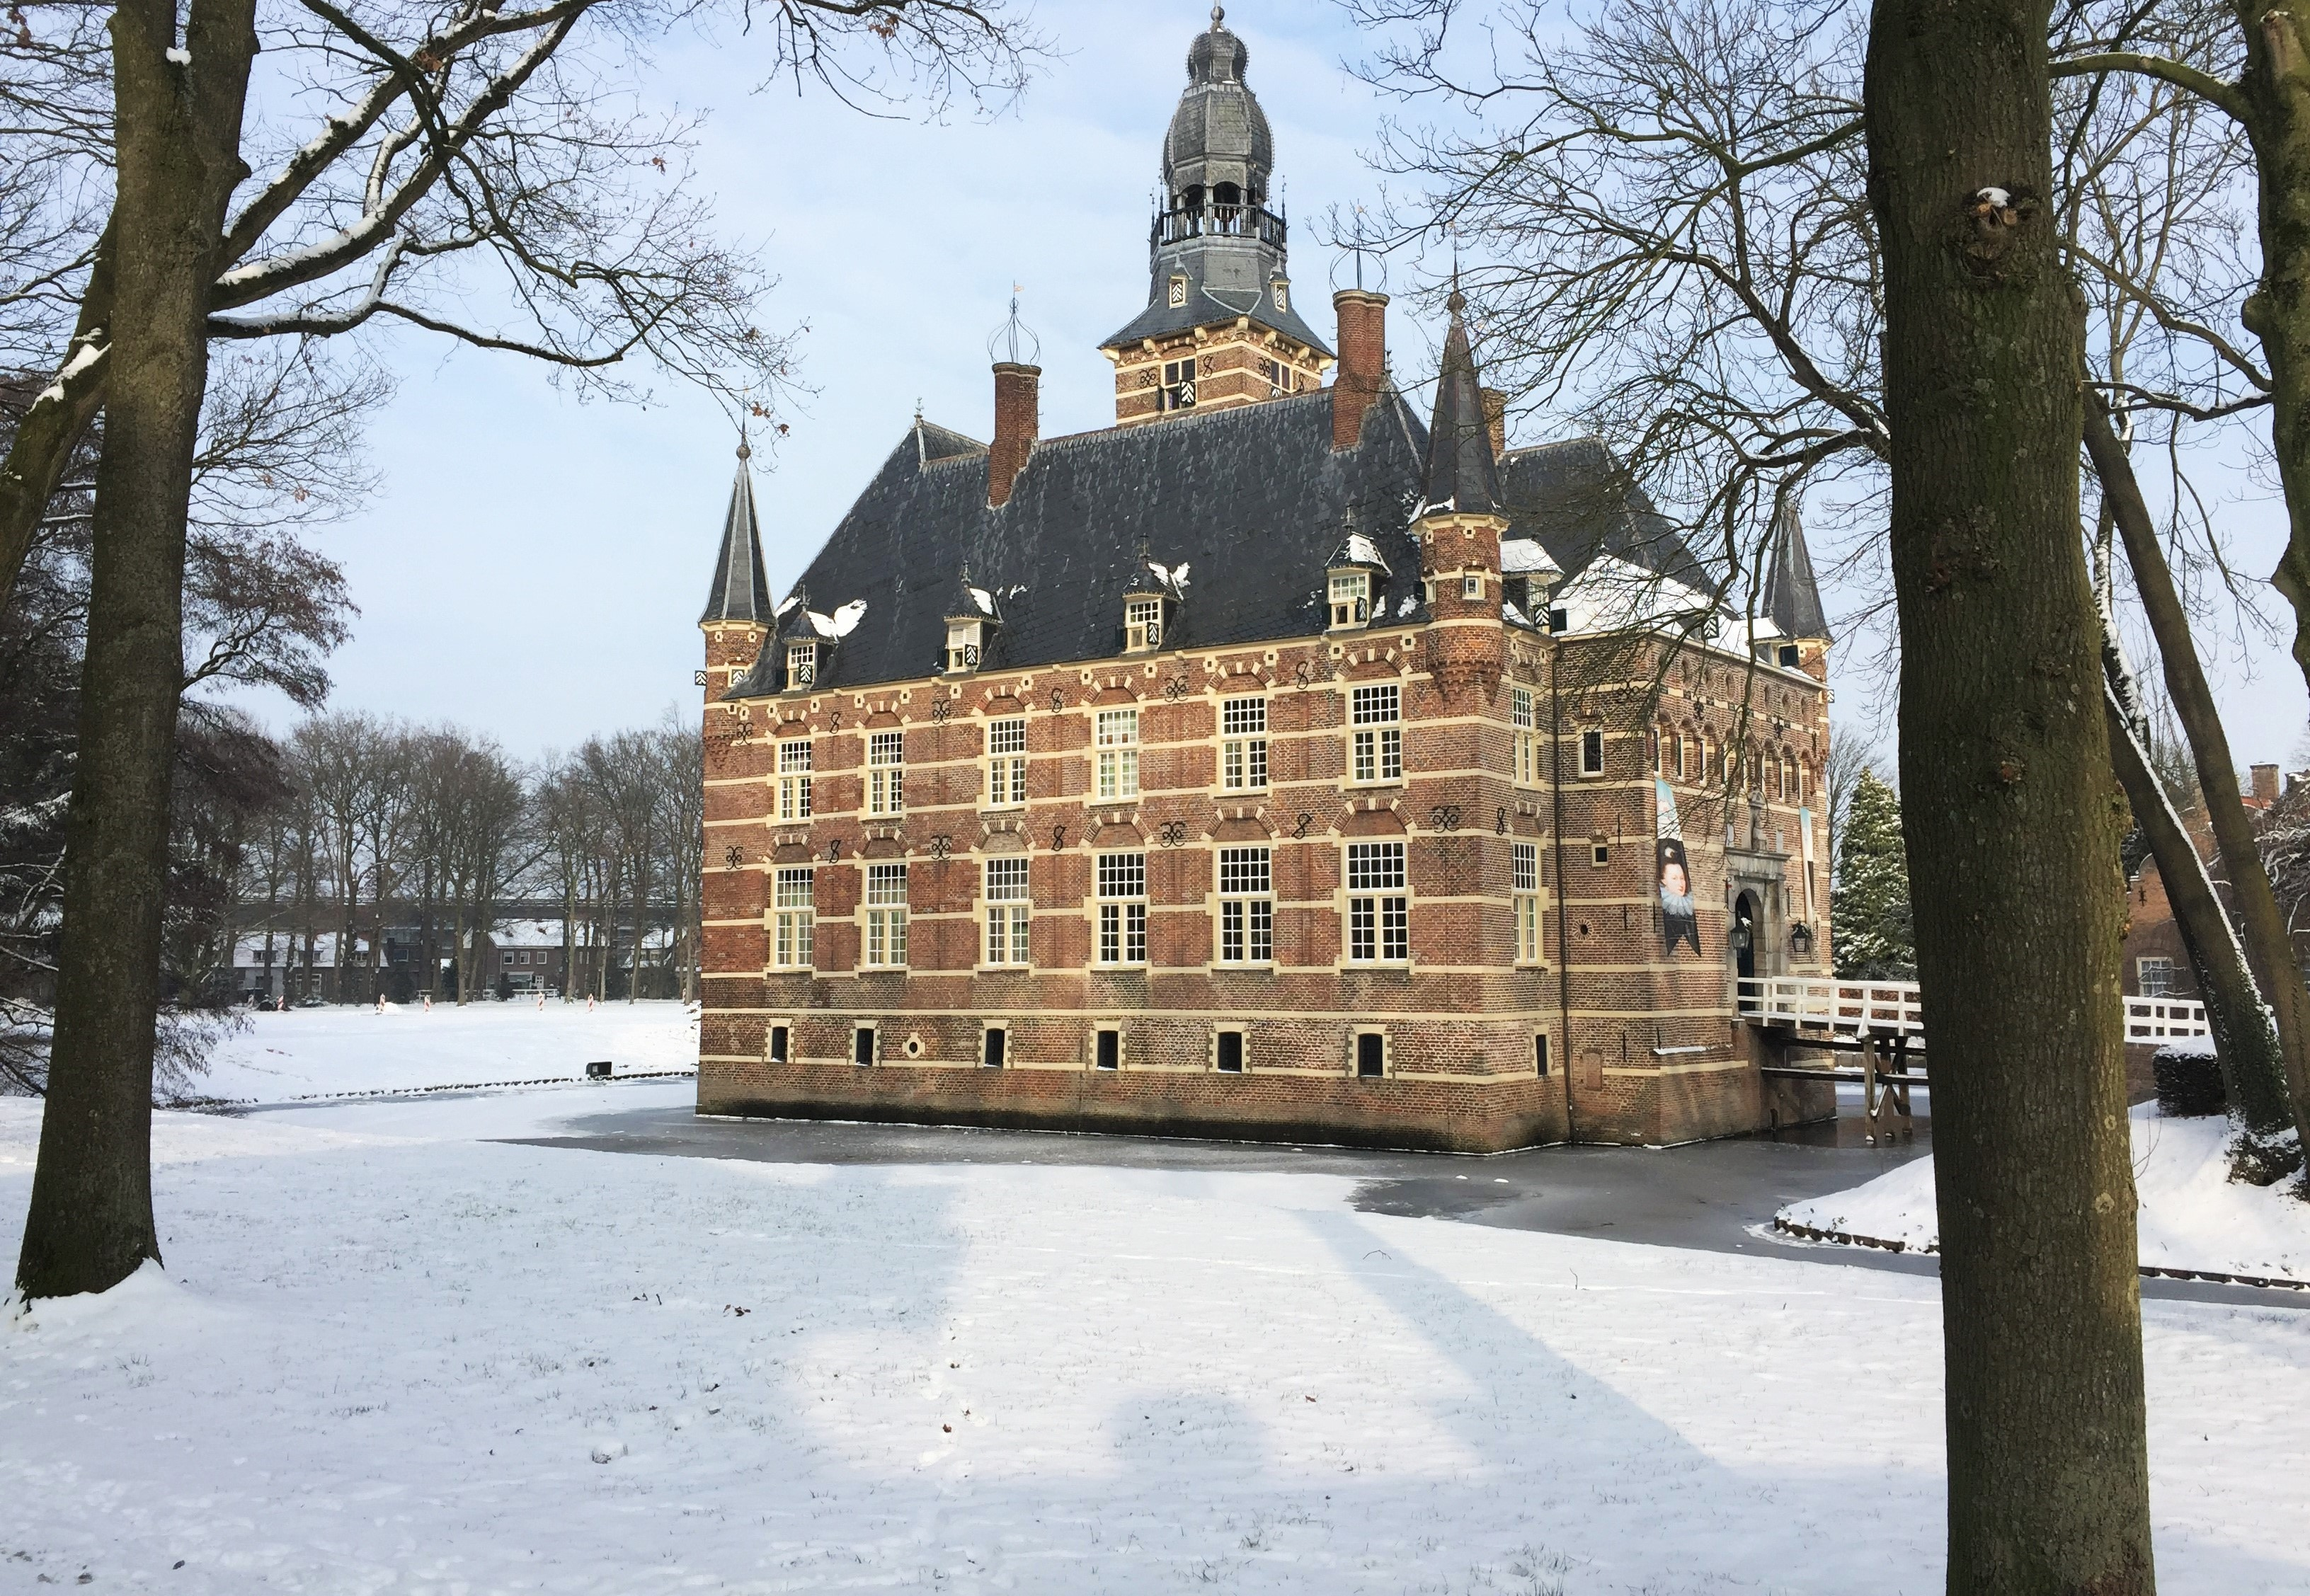 Kasteel-winter-B.1